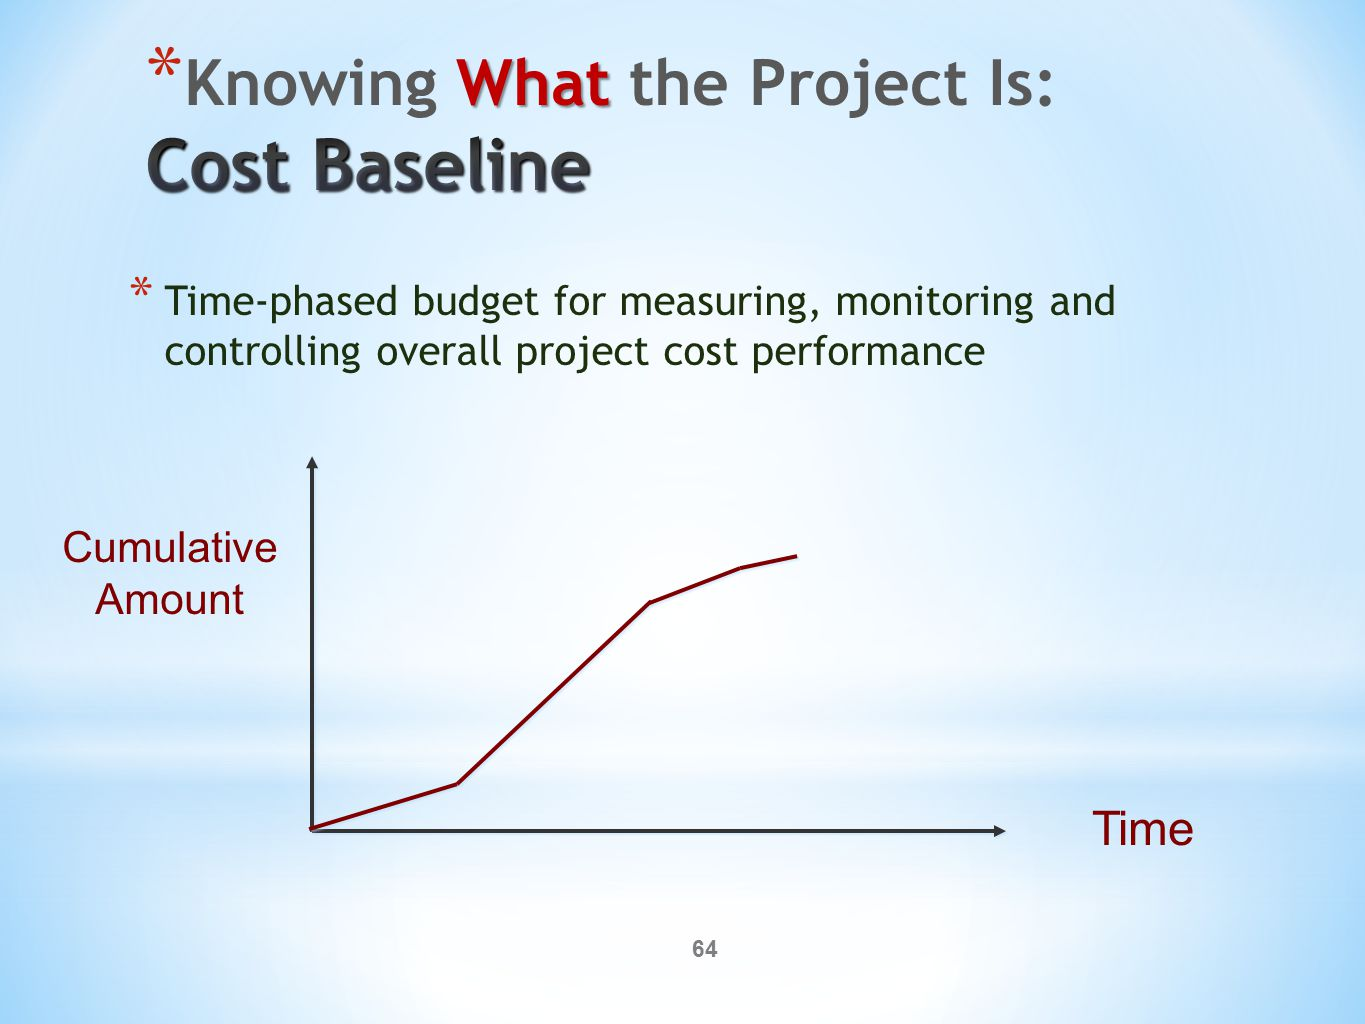 64 * Time-phased budget for measuring, monitoring and controlling overall project cost performance Cumulative Amount Time